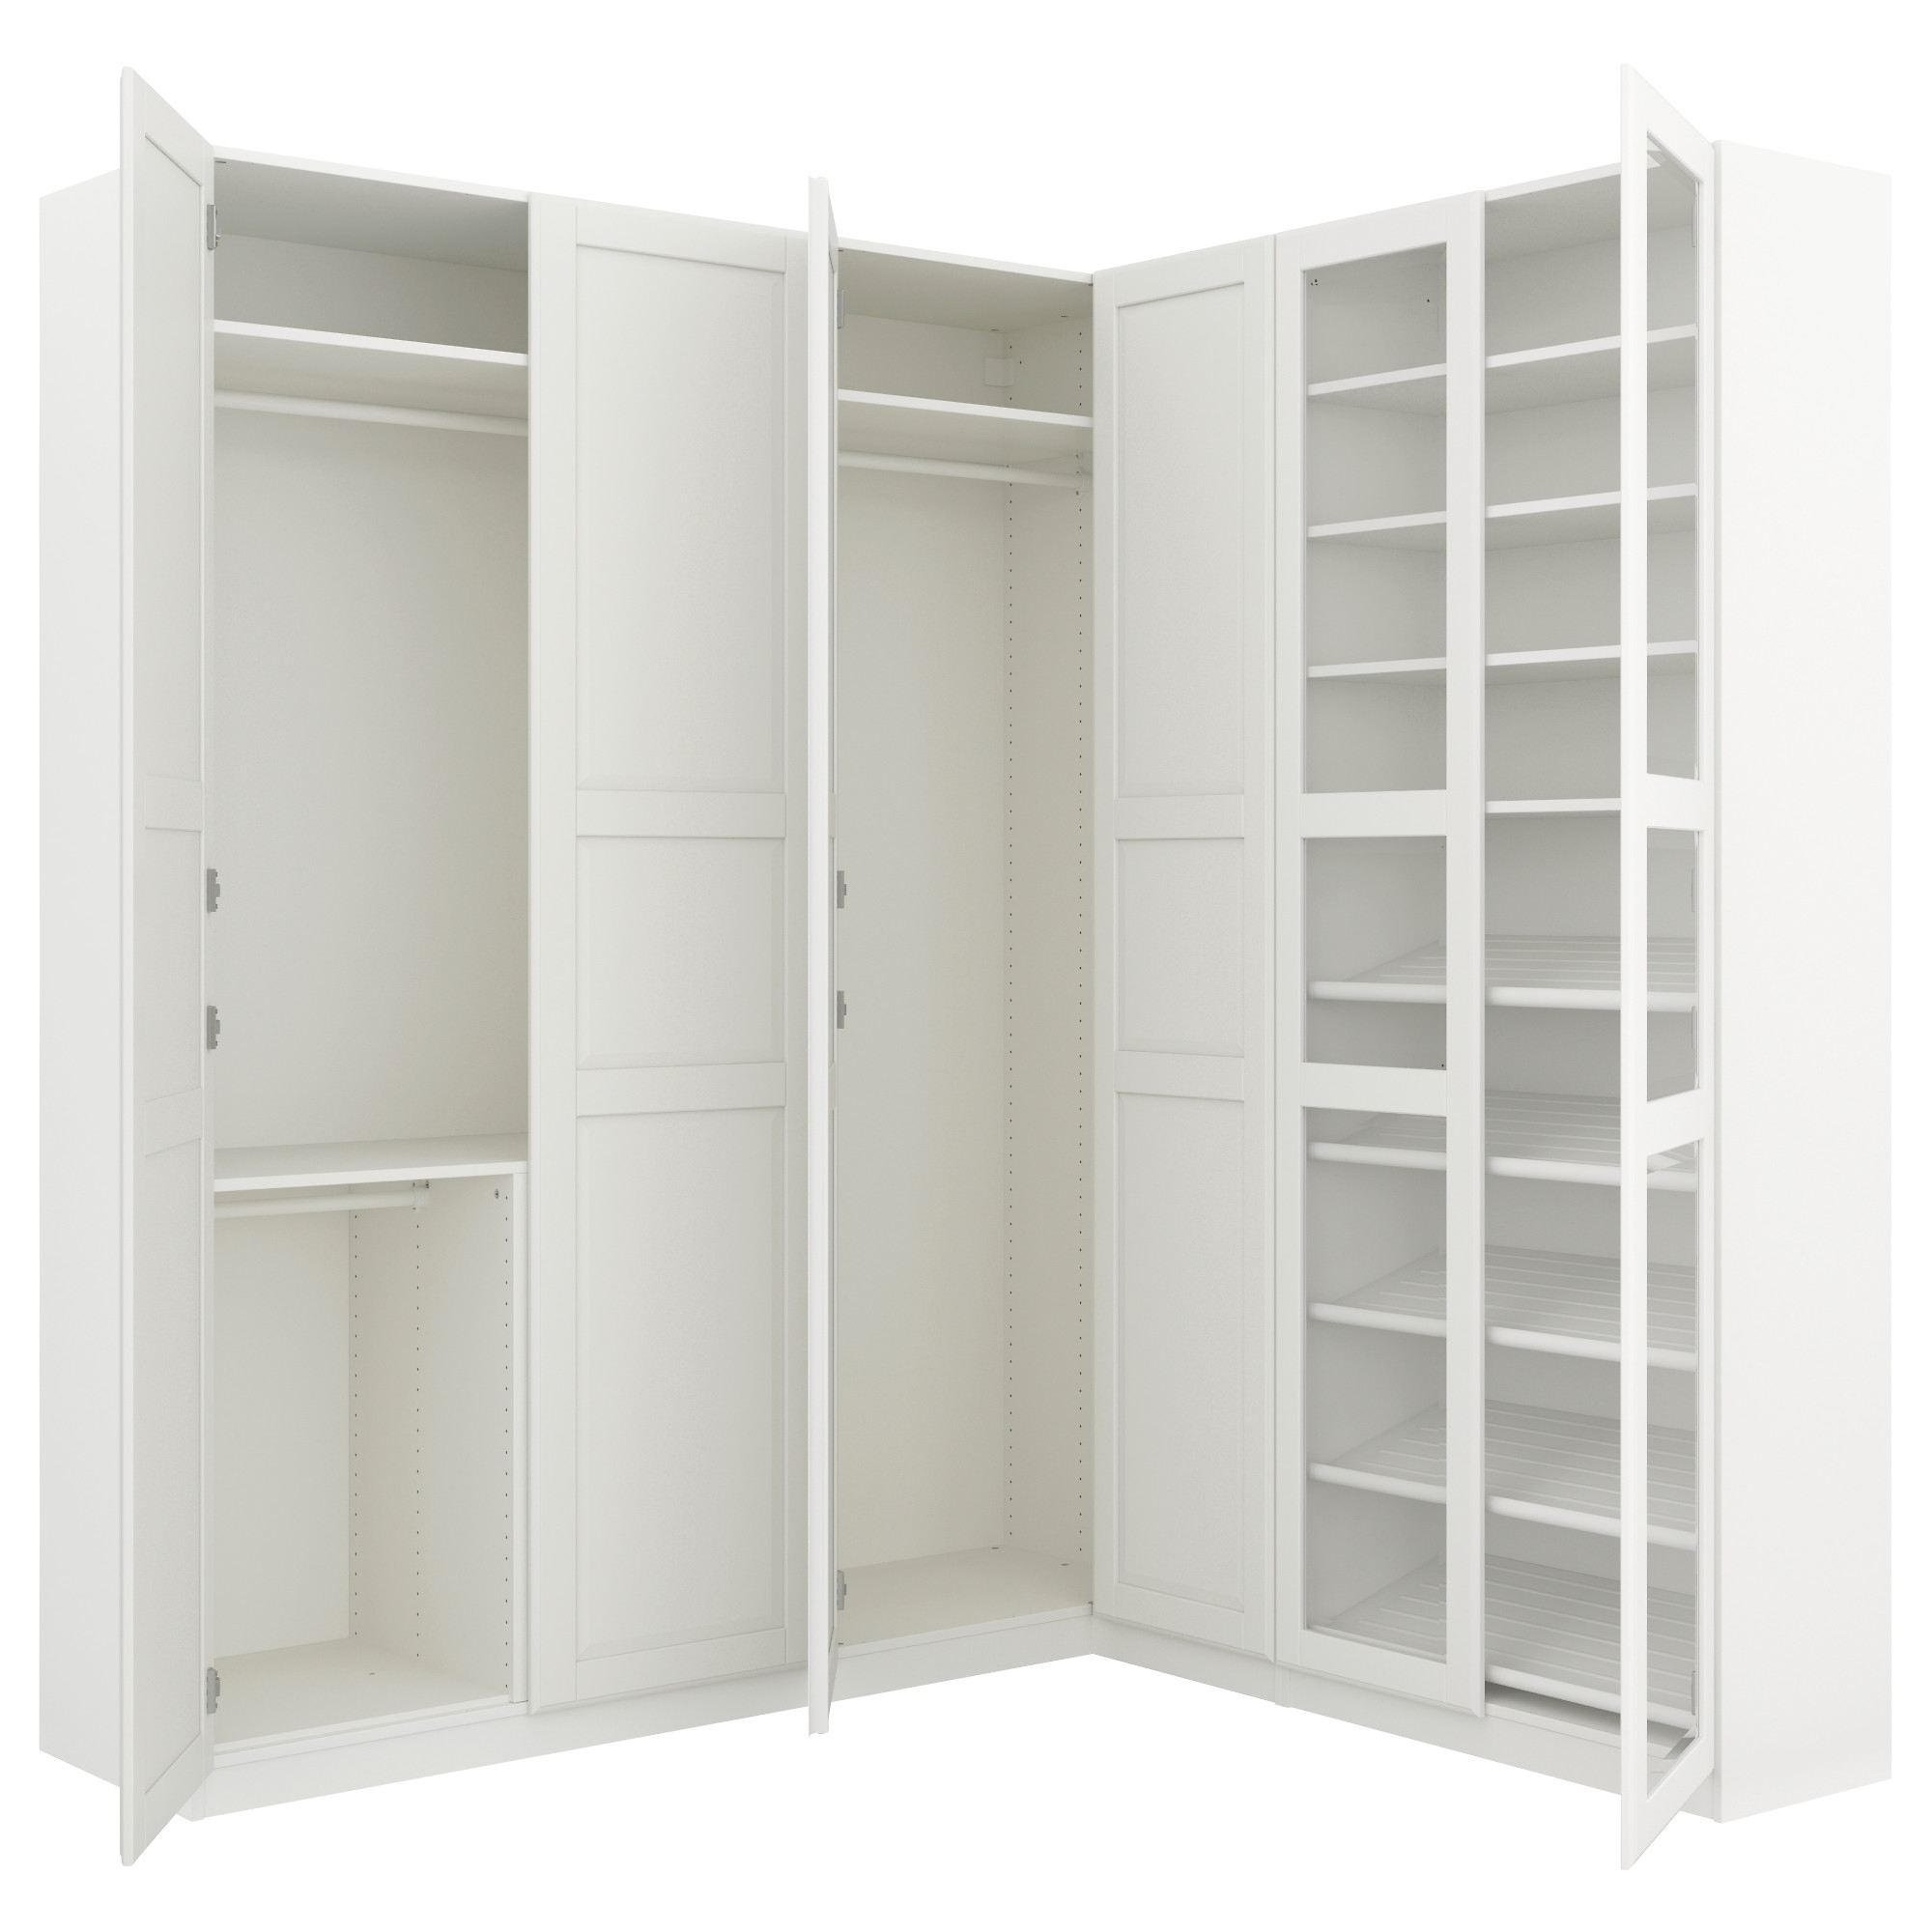 "2 Door Corner Wardrobes For Well Known Pax Corner Wardrobe – 82 3/4/73 7/8X93 1/8 "" – Ikea (View 2 of 15)"